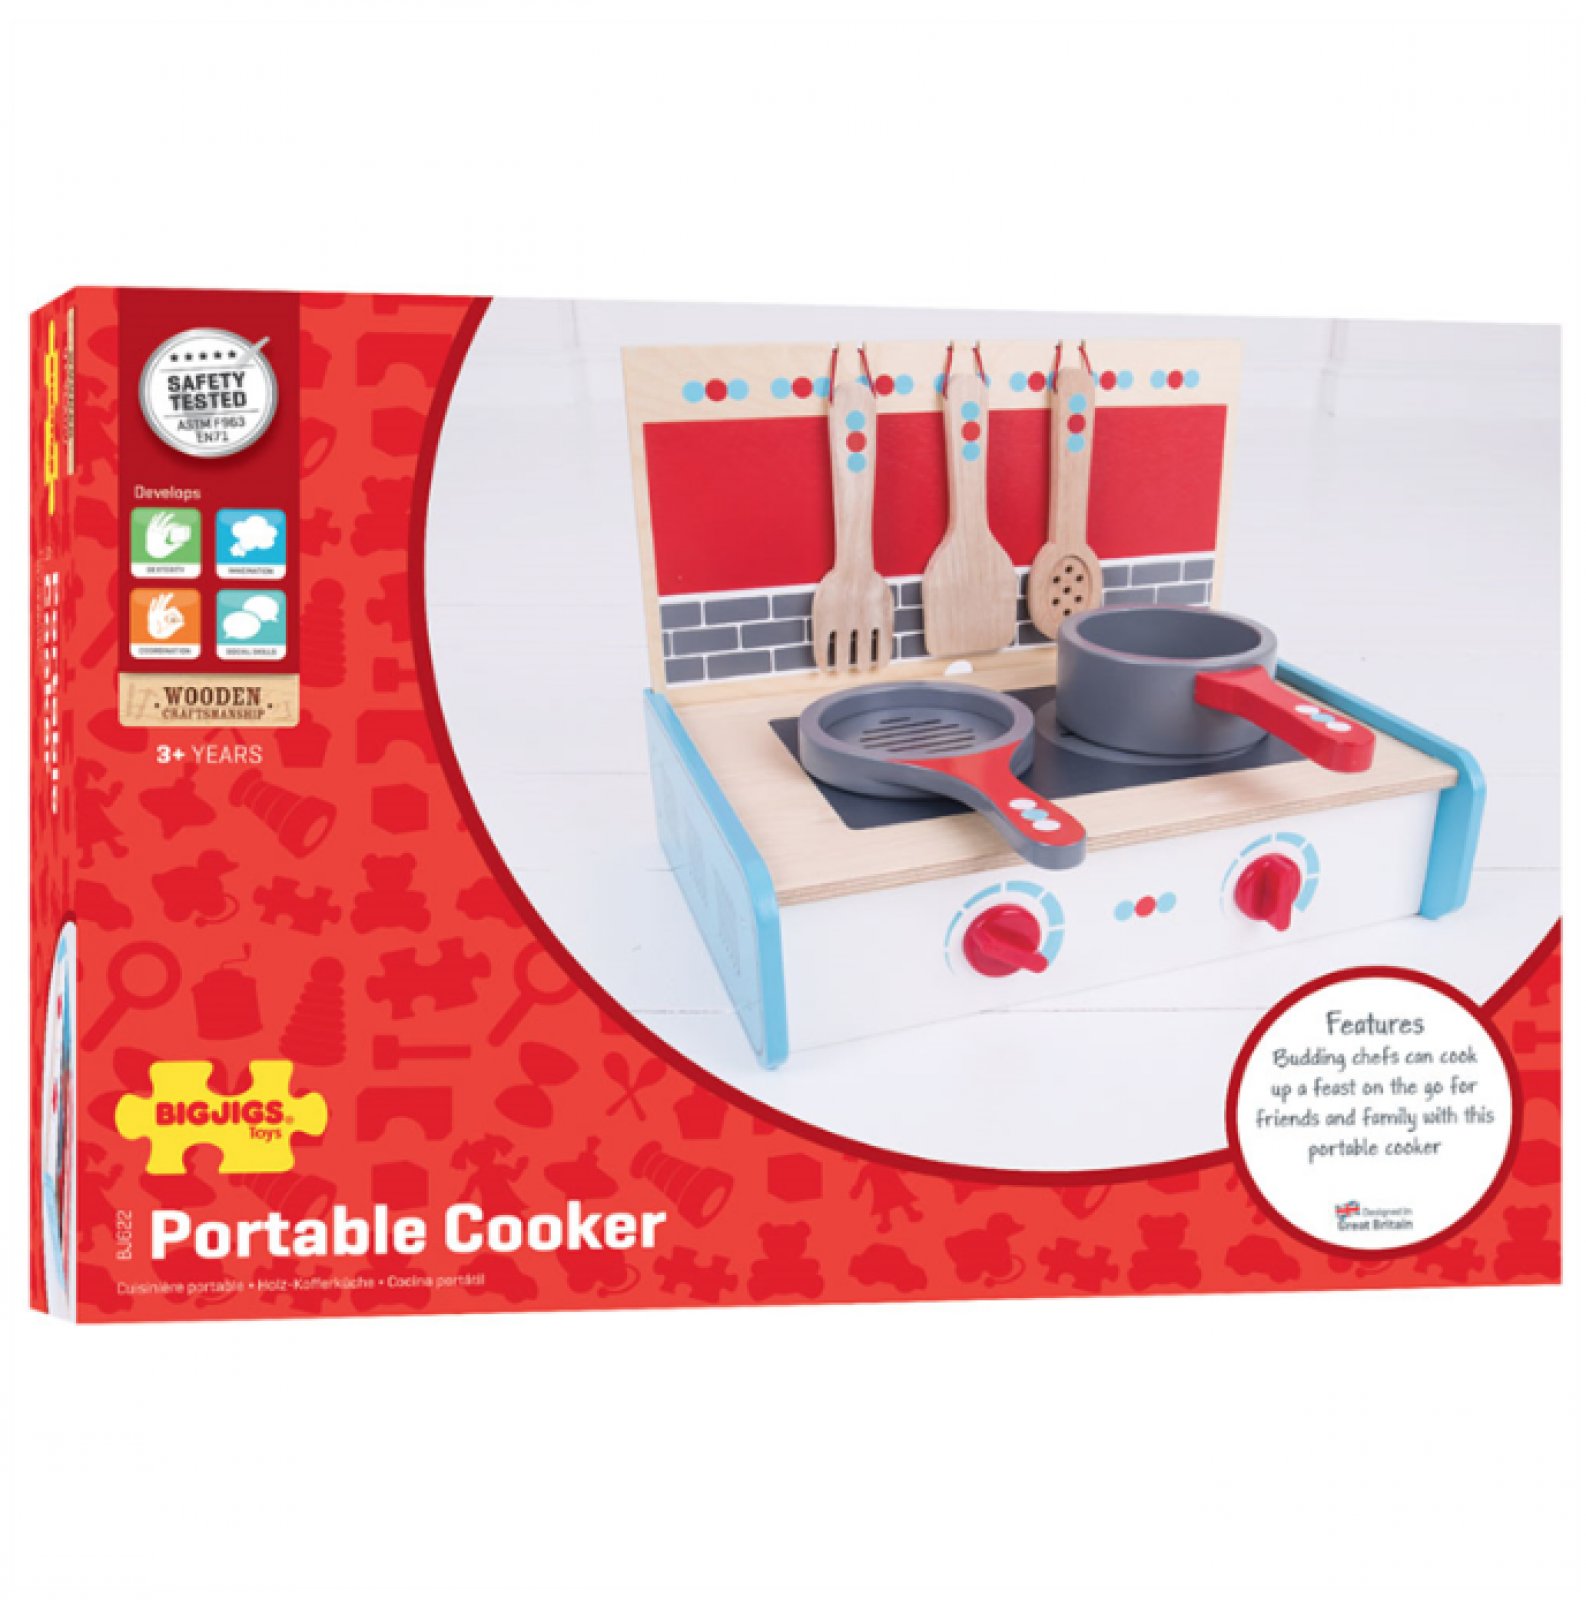 Portable Cooker Wooden Toy thumbnails